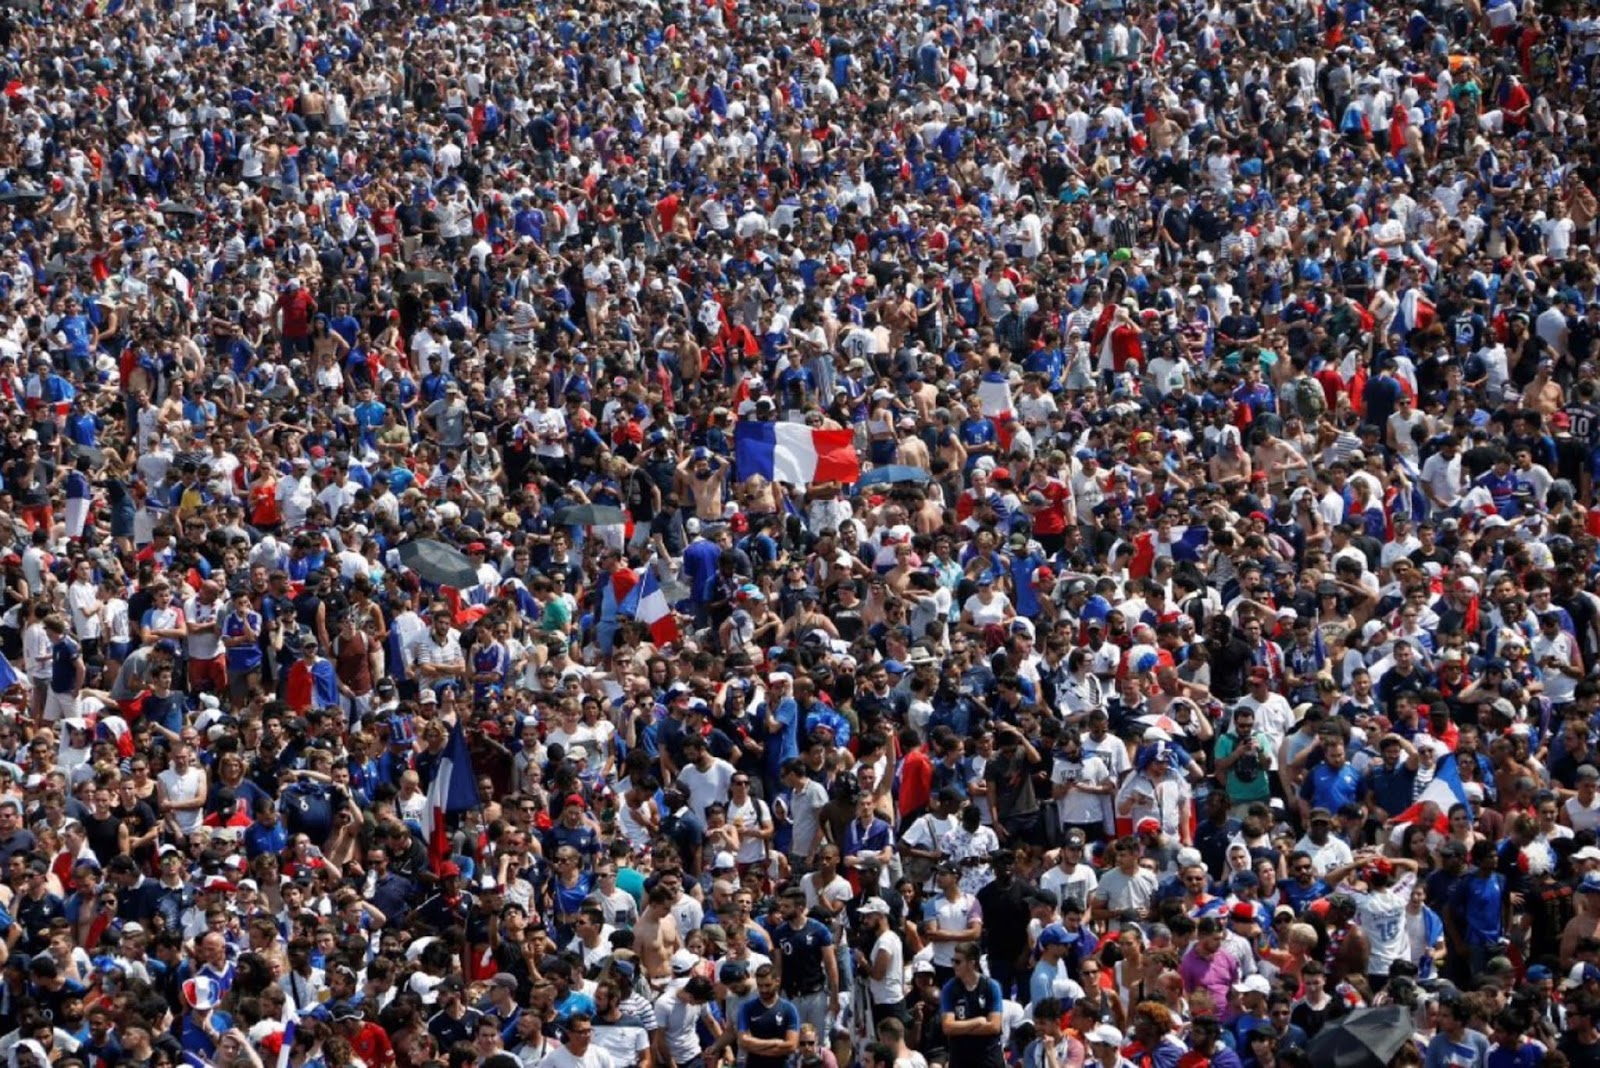 WORLD CUP, FRANCE 2